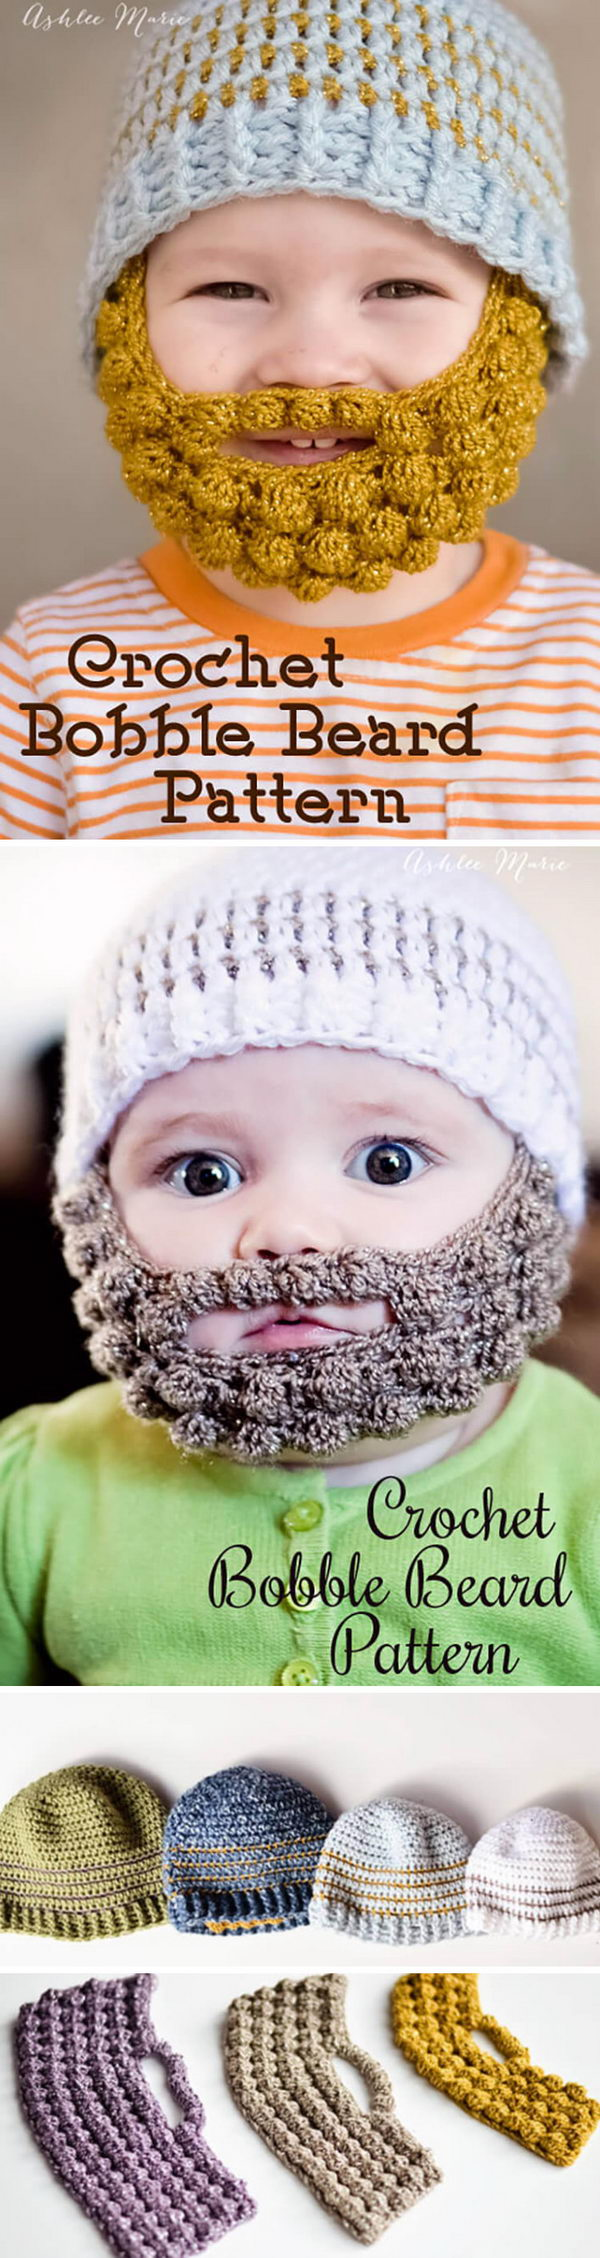 Crochet Bobble Beard.